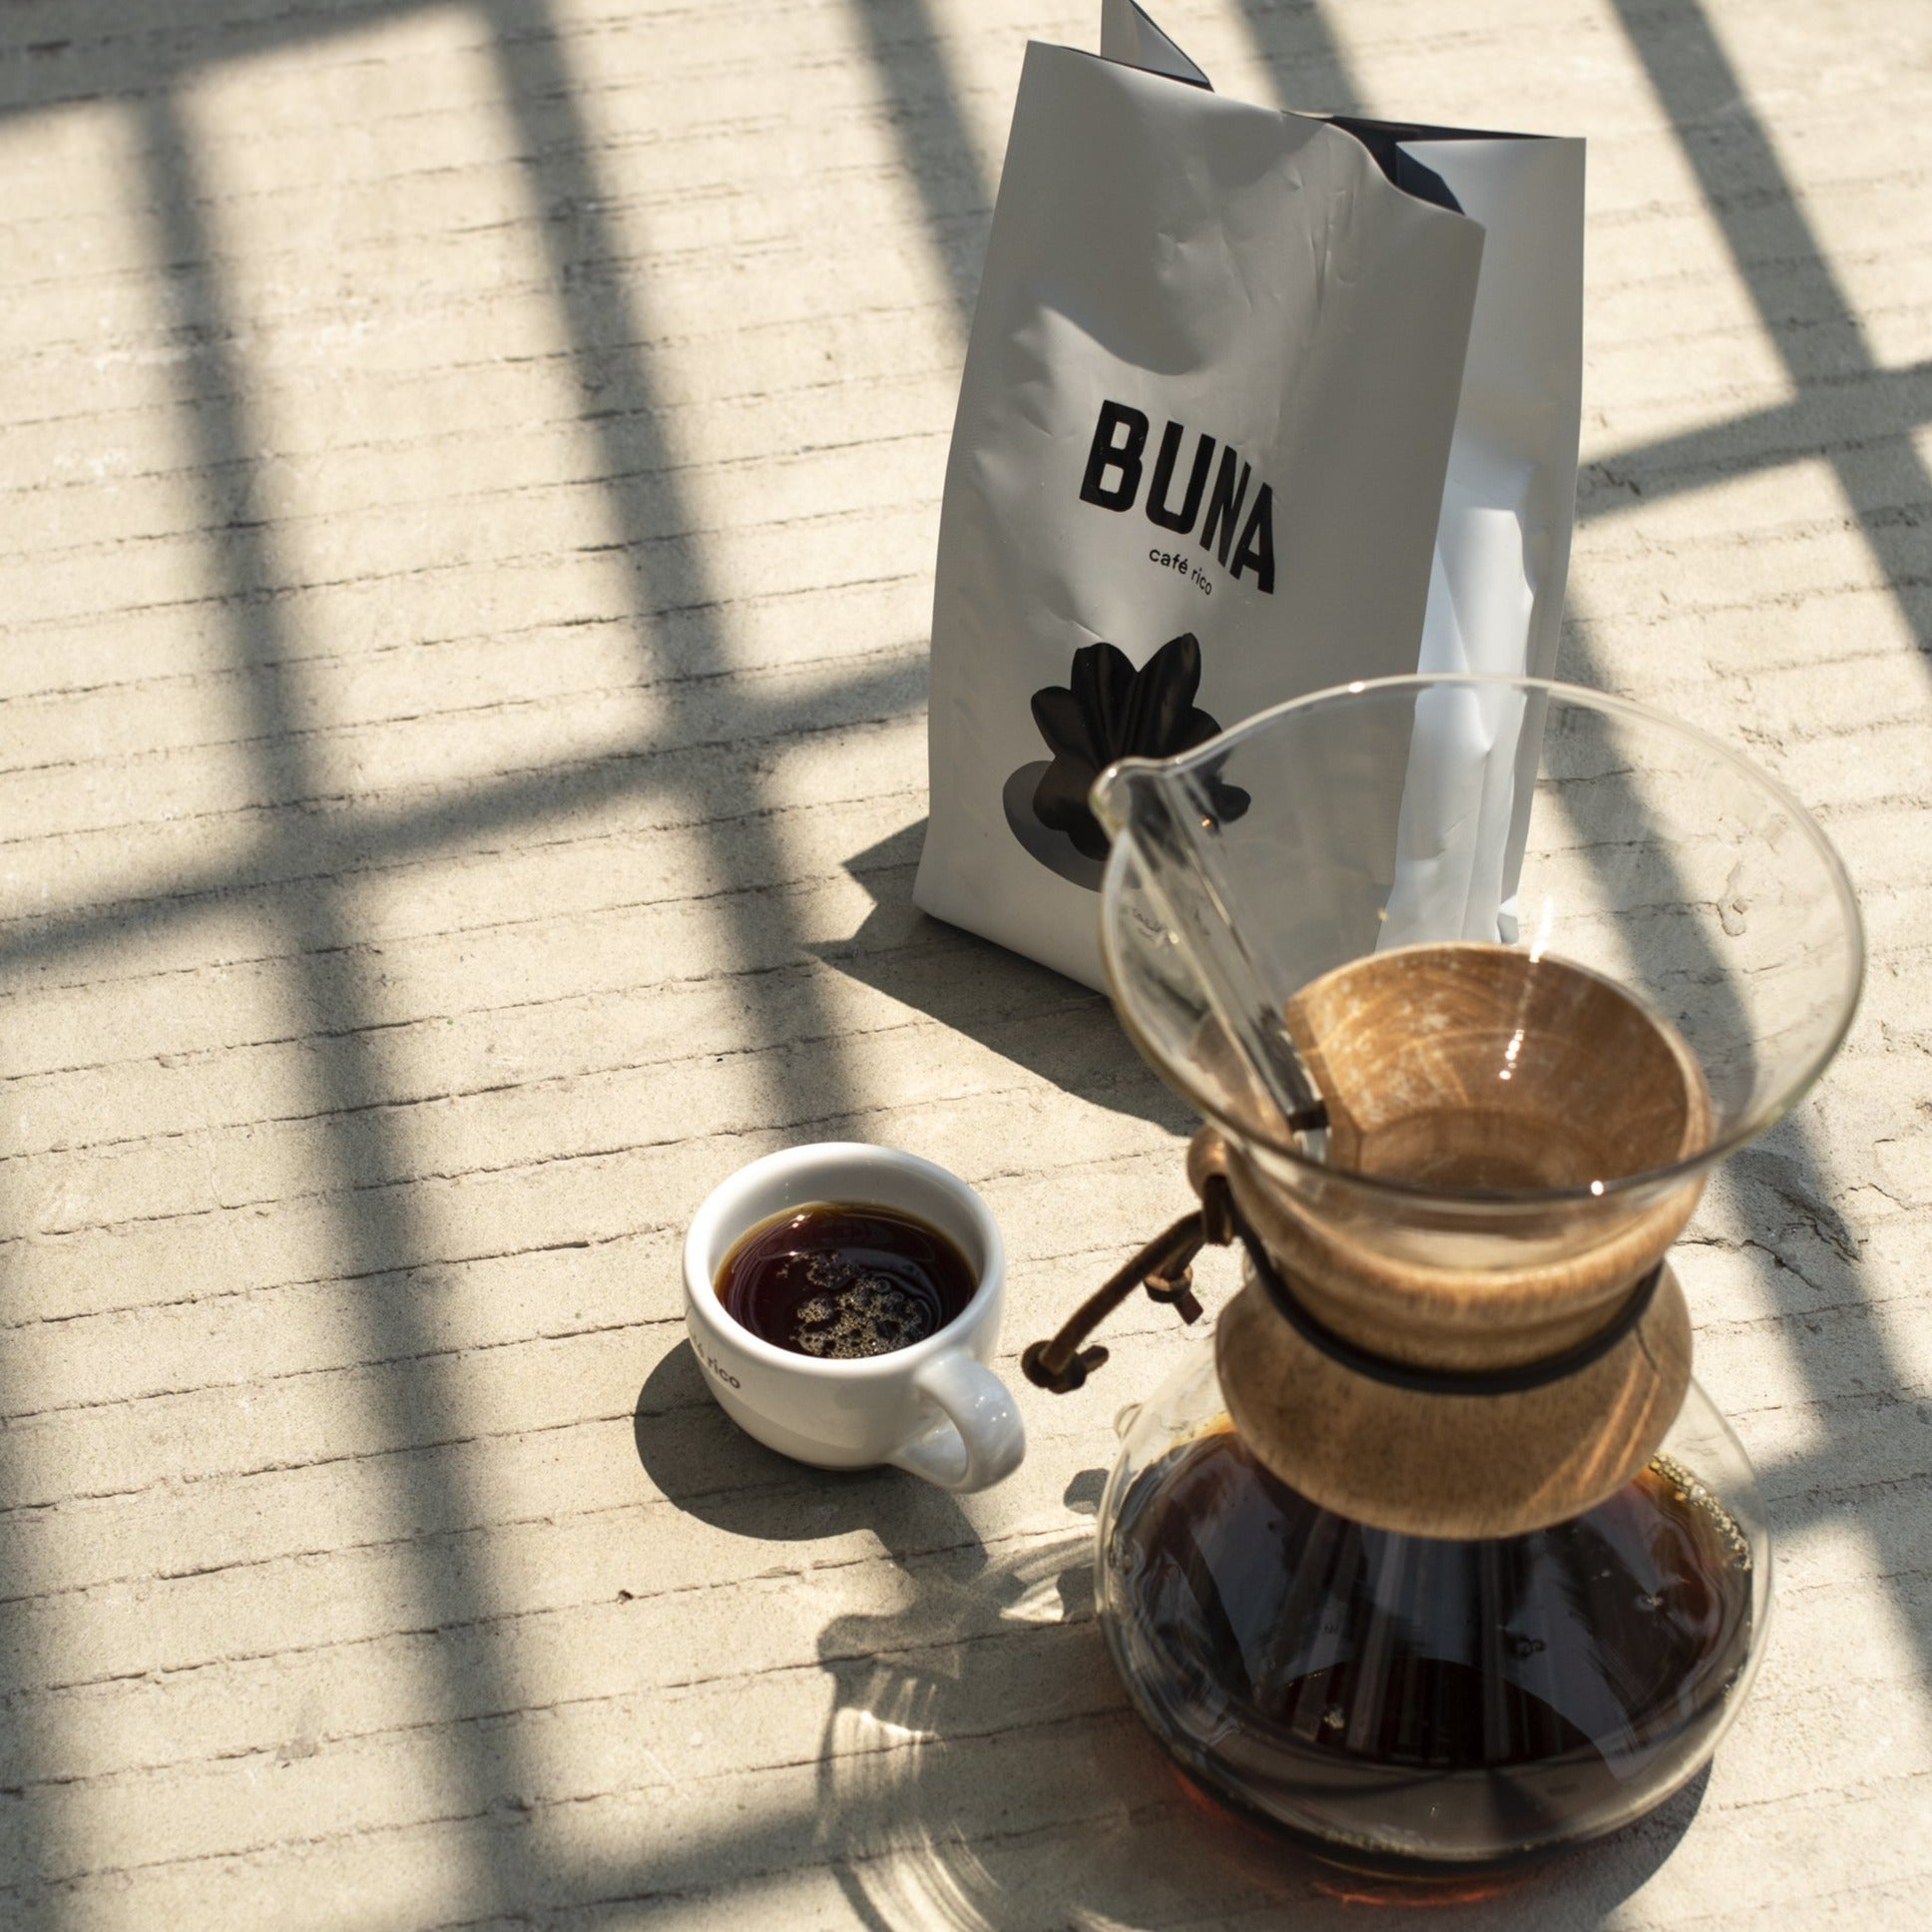 A bag of Buna coffee alongside a carafe and mug of brewed coffee.